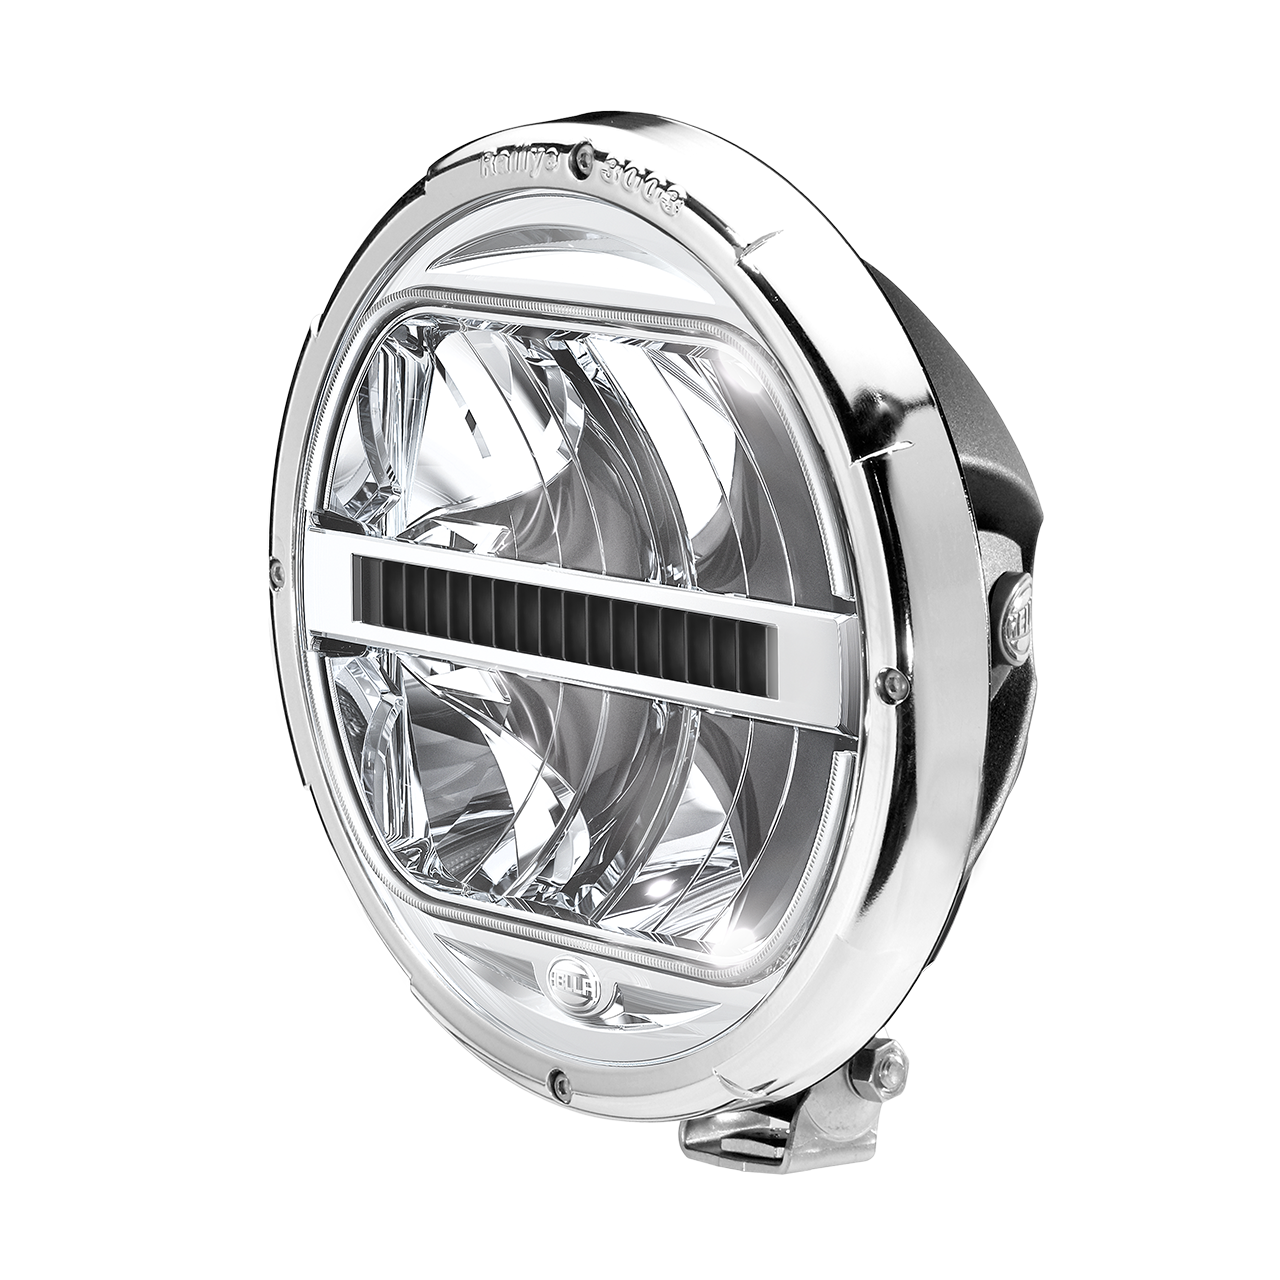 Hella RALLYE 3003 LED Product Overview